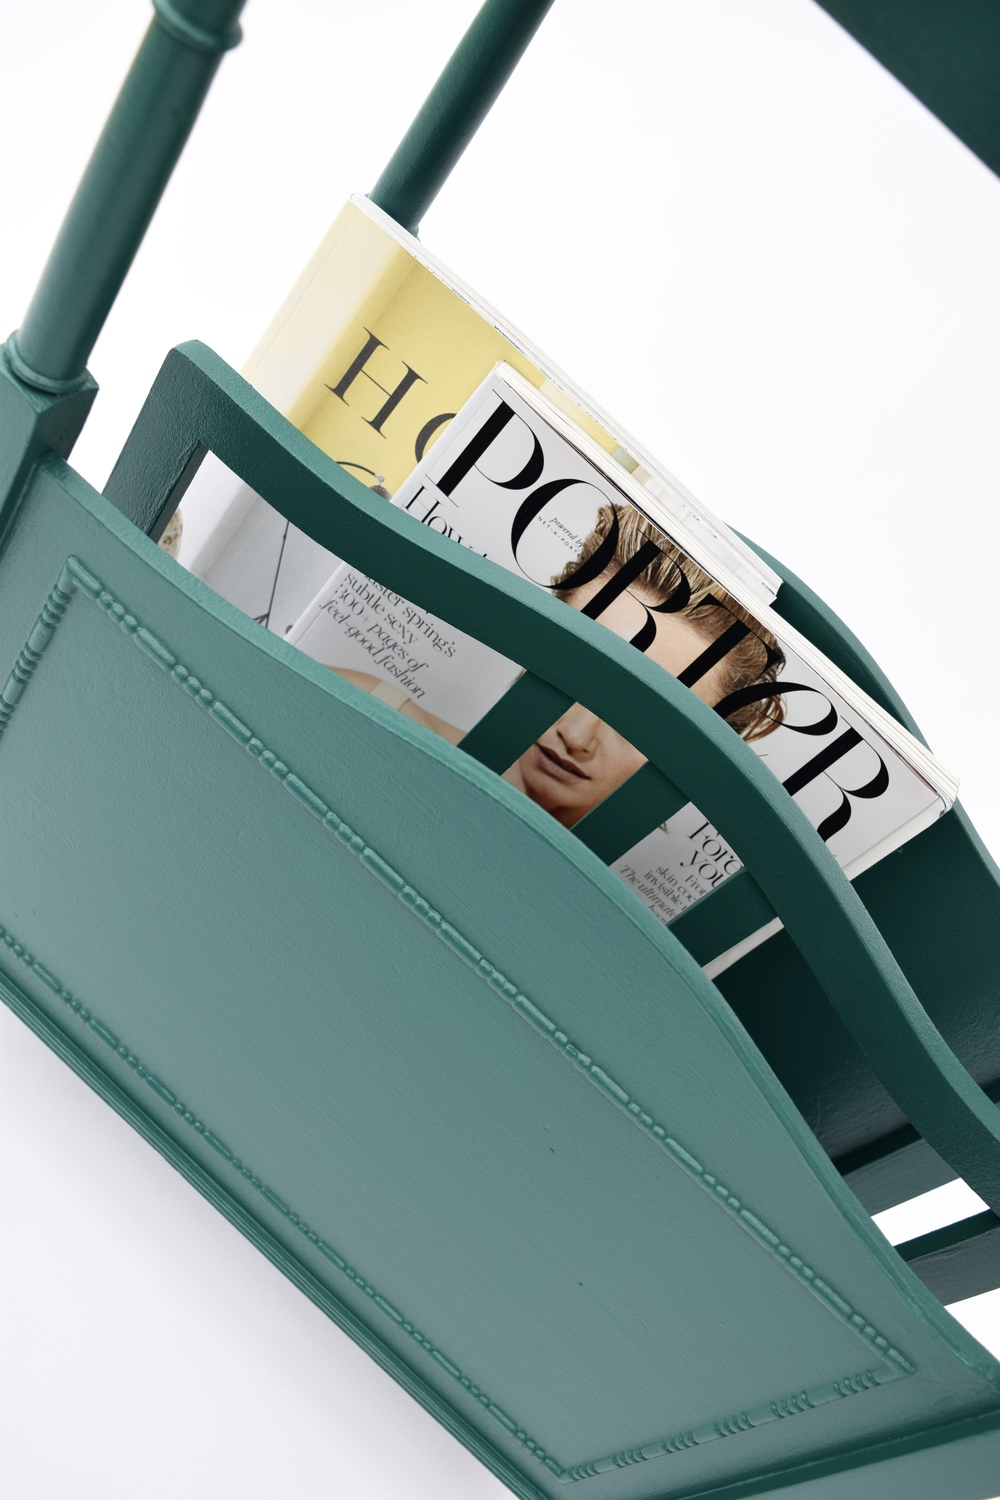 UPCYCLED MAGAZINE AND BOOK RACK